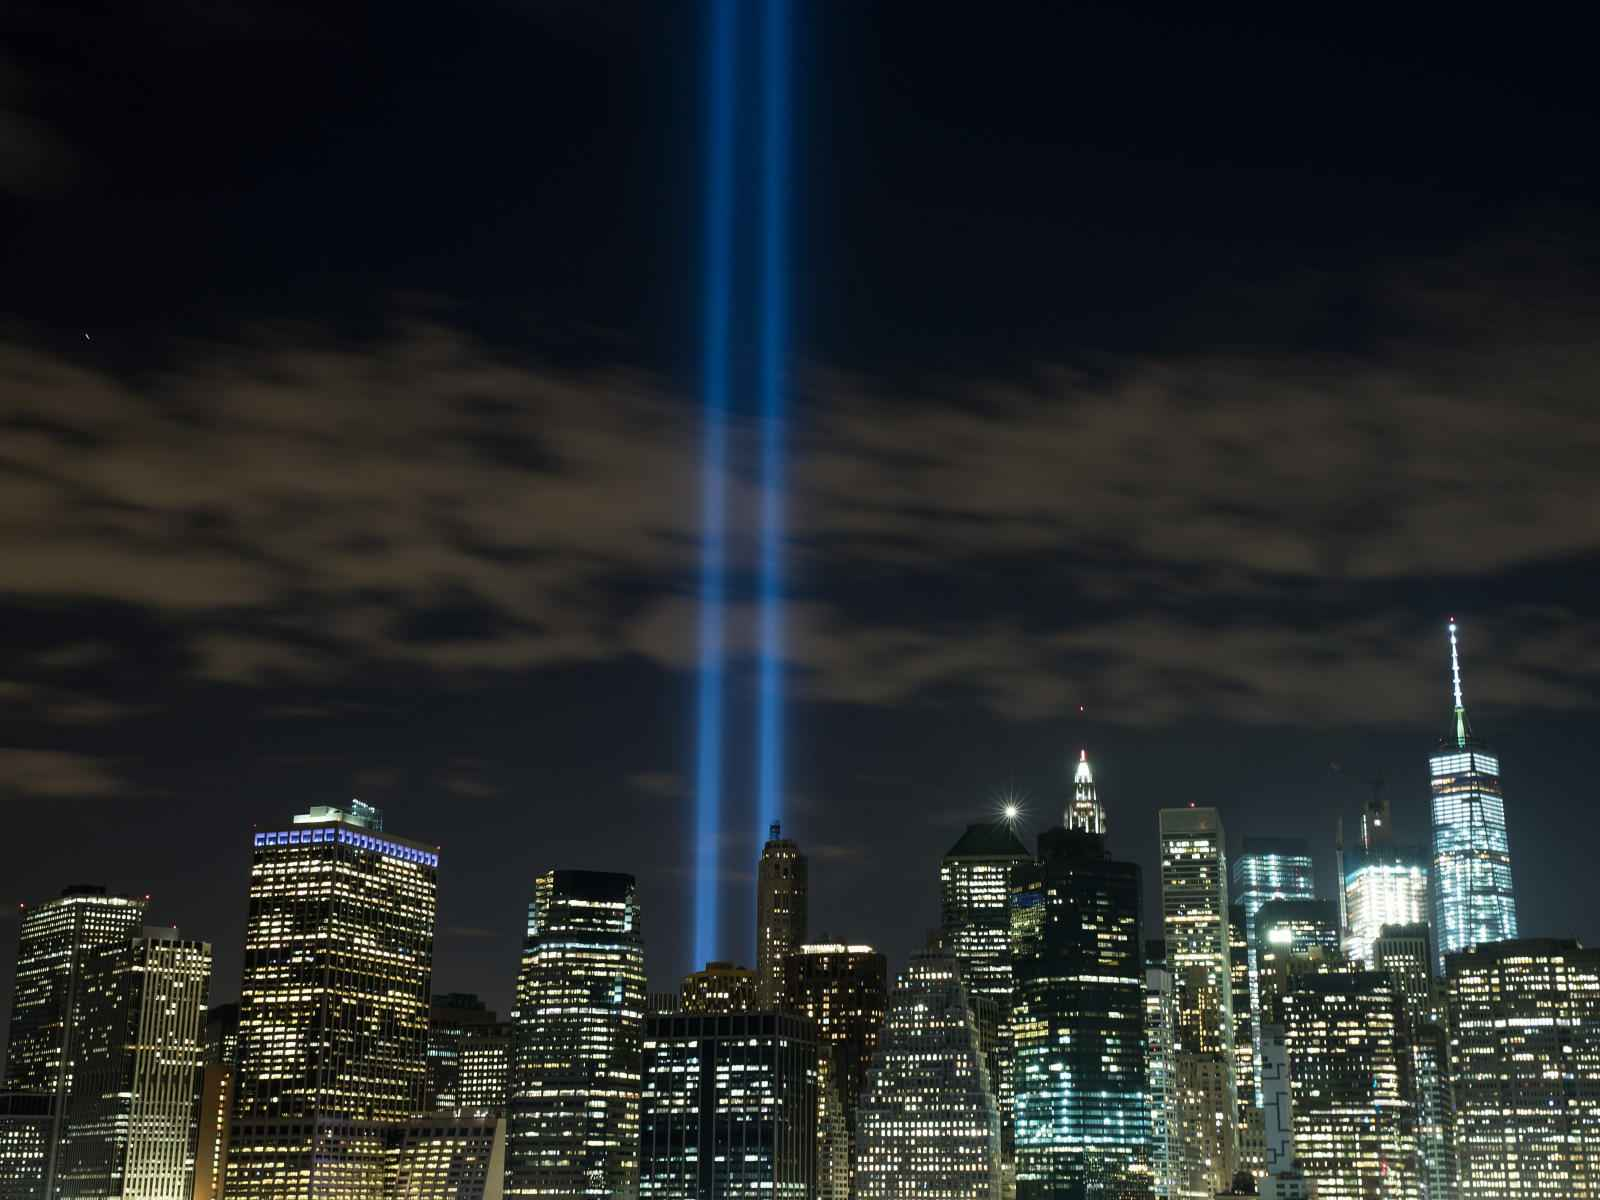 The 'Tribute in Light' rises from the Lower Manhattan skyline as seen from the Brooklyn Heights Promenade, September 7, 2016 in the Brooklyn borough of New York City. The lights were being tested in advance of the 15th anniversary of the September 11 terrorist attacks. (Photo by Drew Angerer/Getty Images)